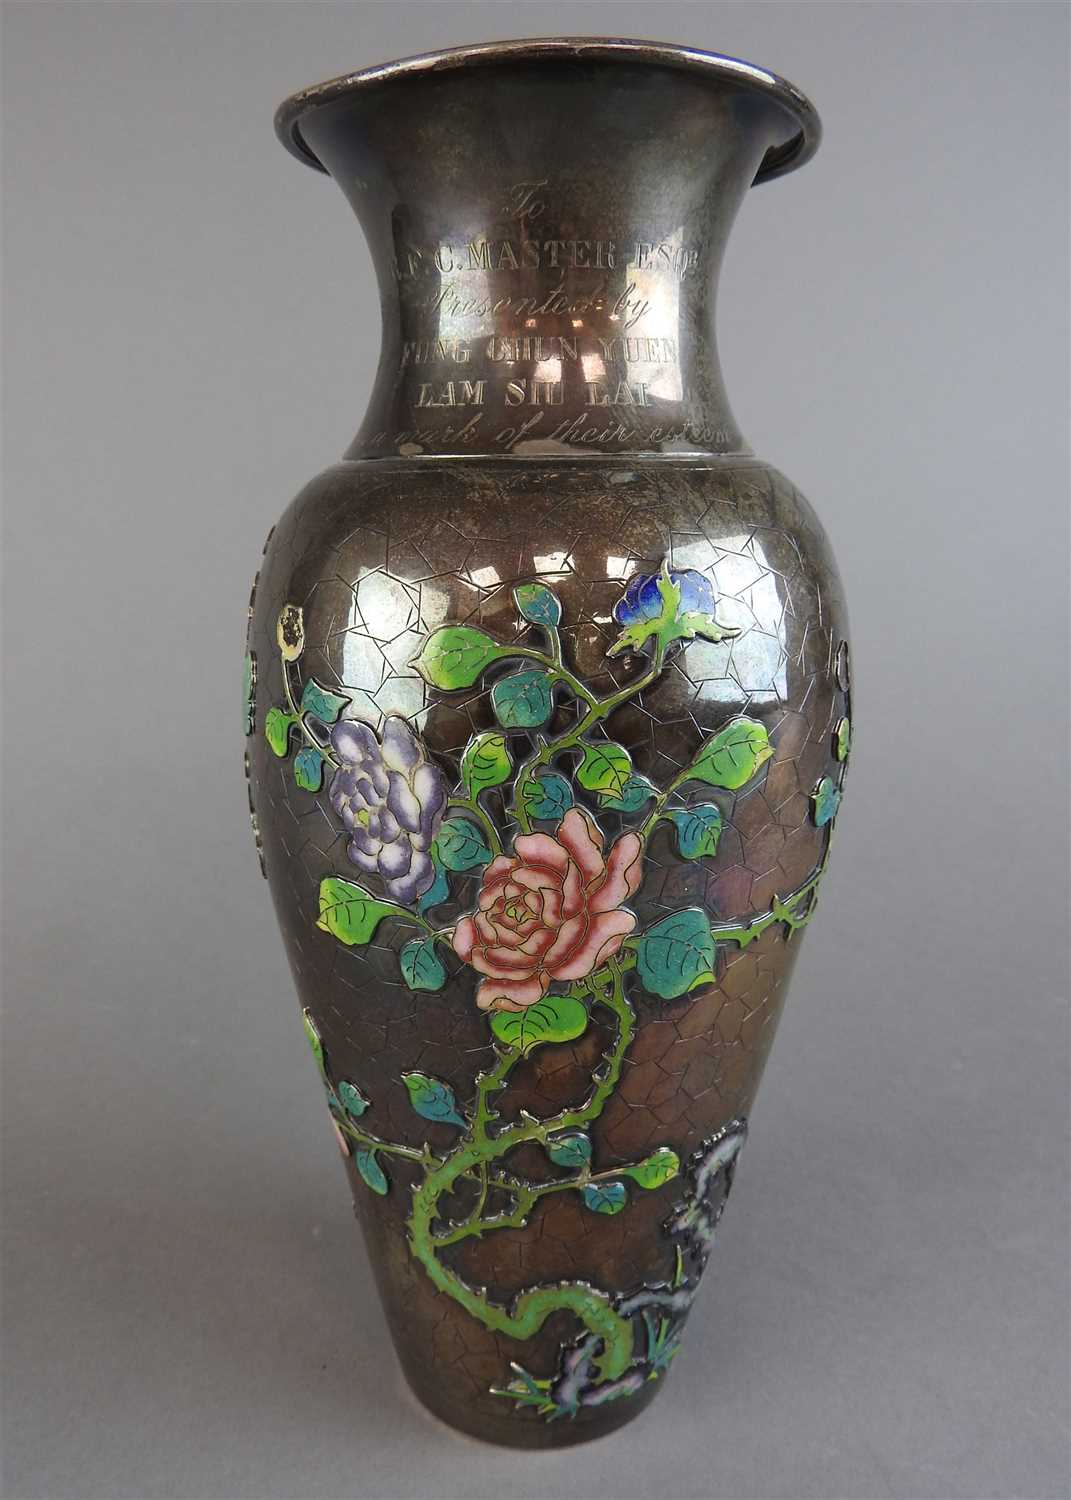 46 - A Chinese export silver and enamelled vase